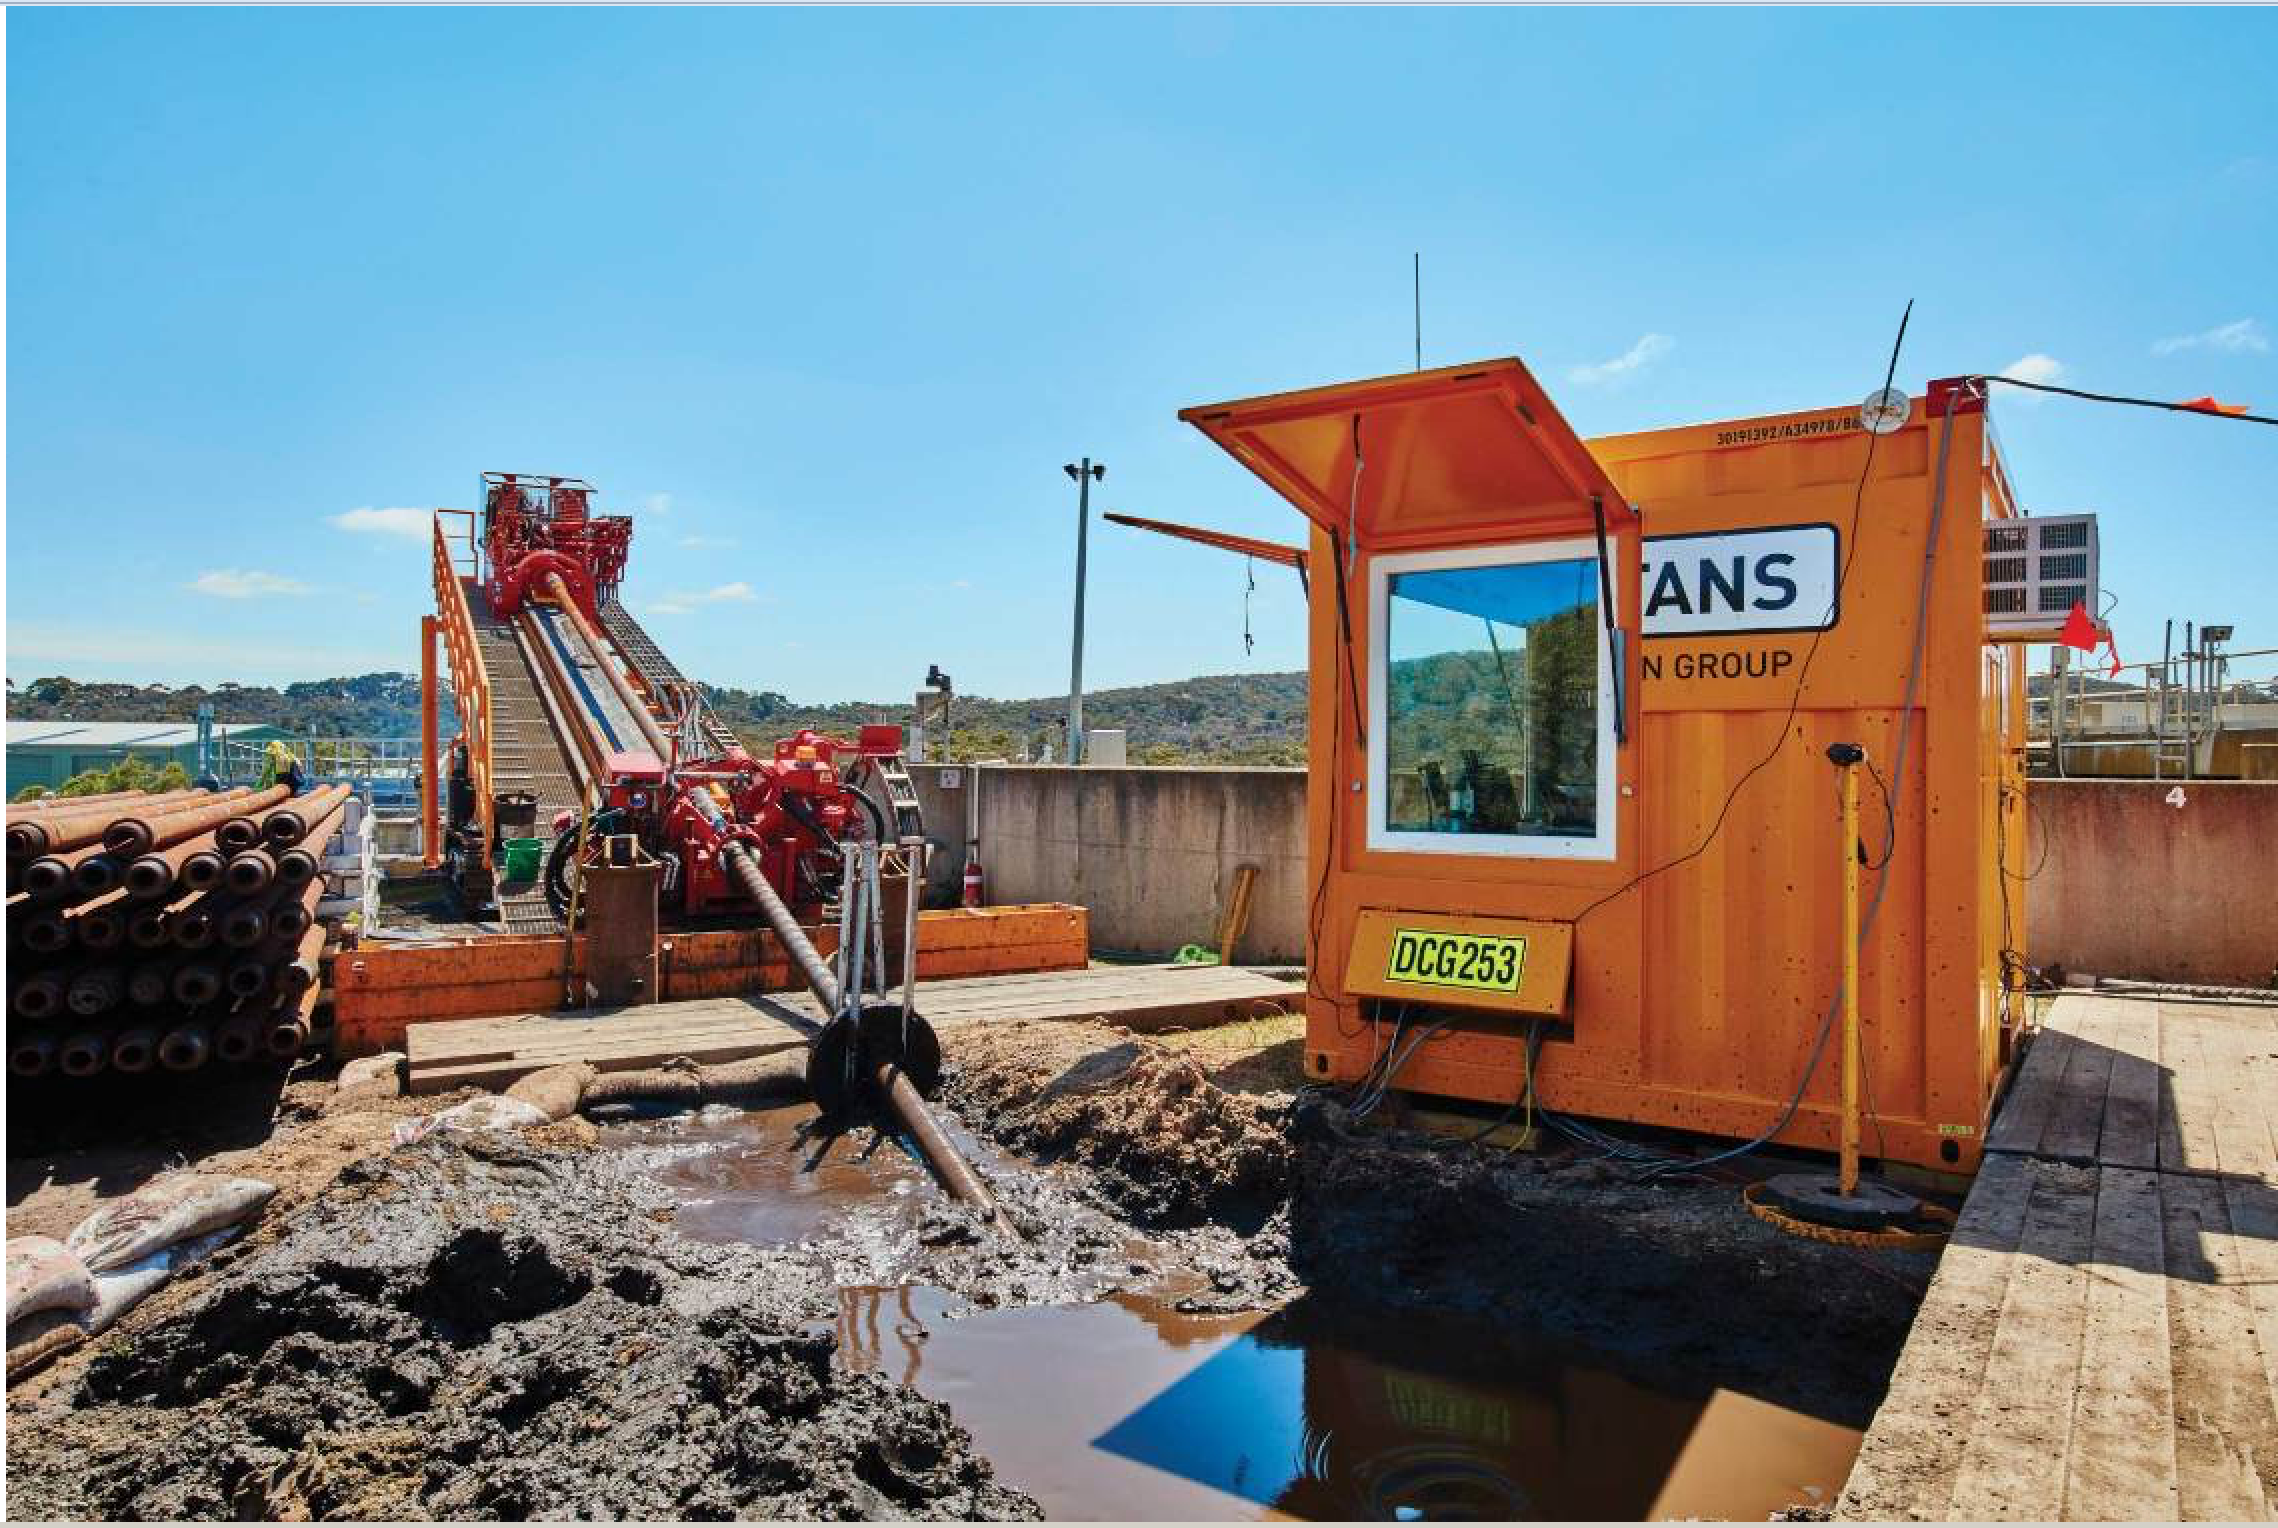 The drilling rig's 250 tons of pulling force led to early completion of a complex project.